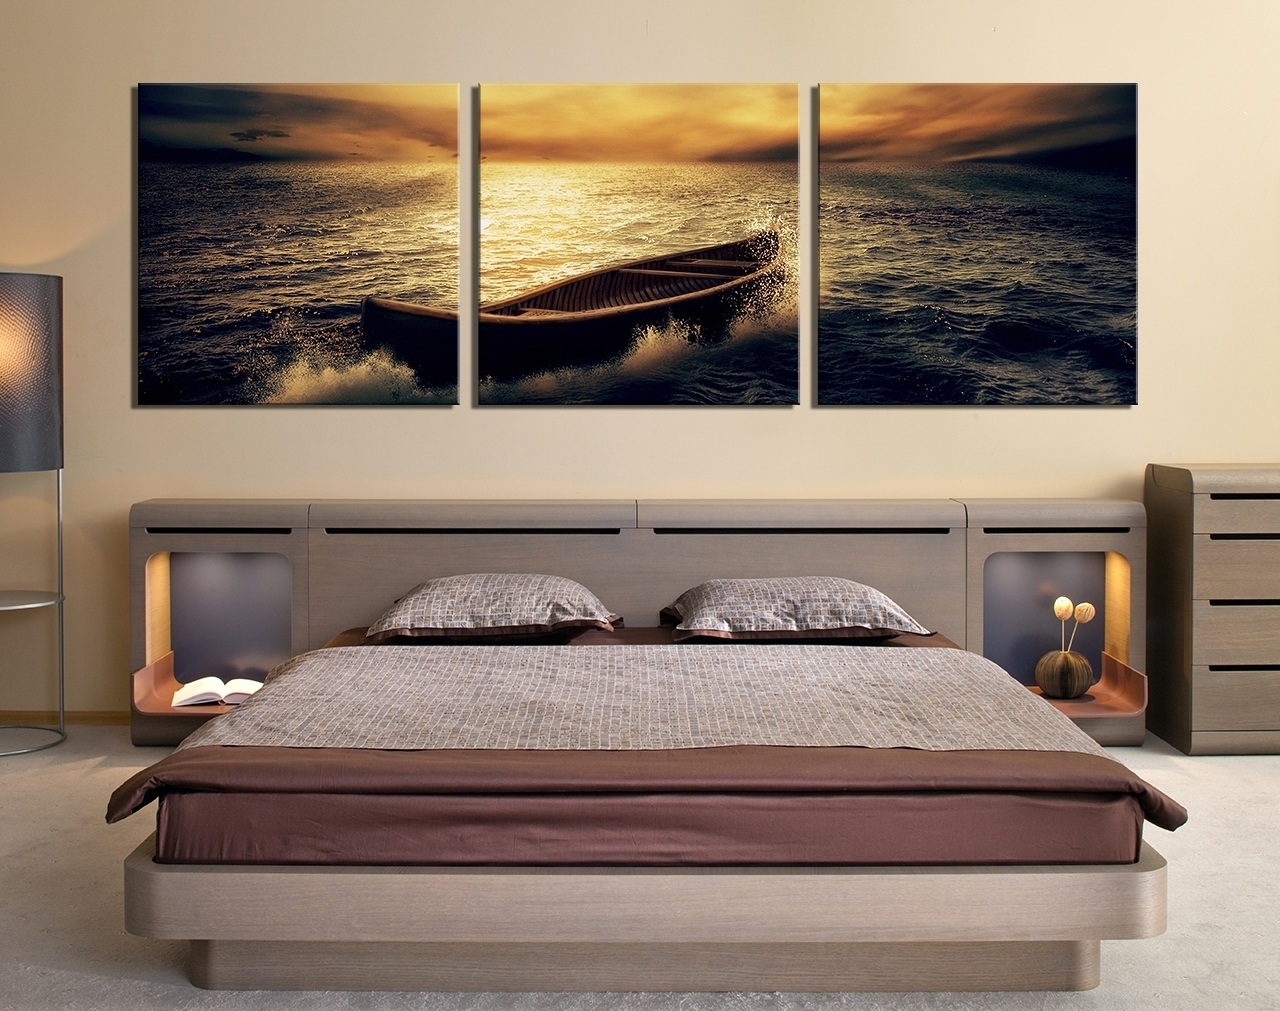 Luxury Canvas Wall Art For Bedroom | Wall Decorations Intended For 2017 Ocean Wall Art (View 18 of 20)